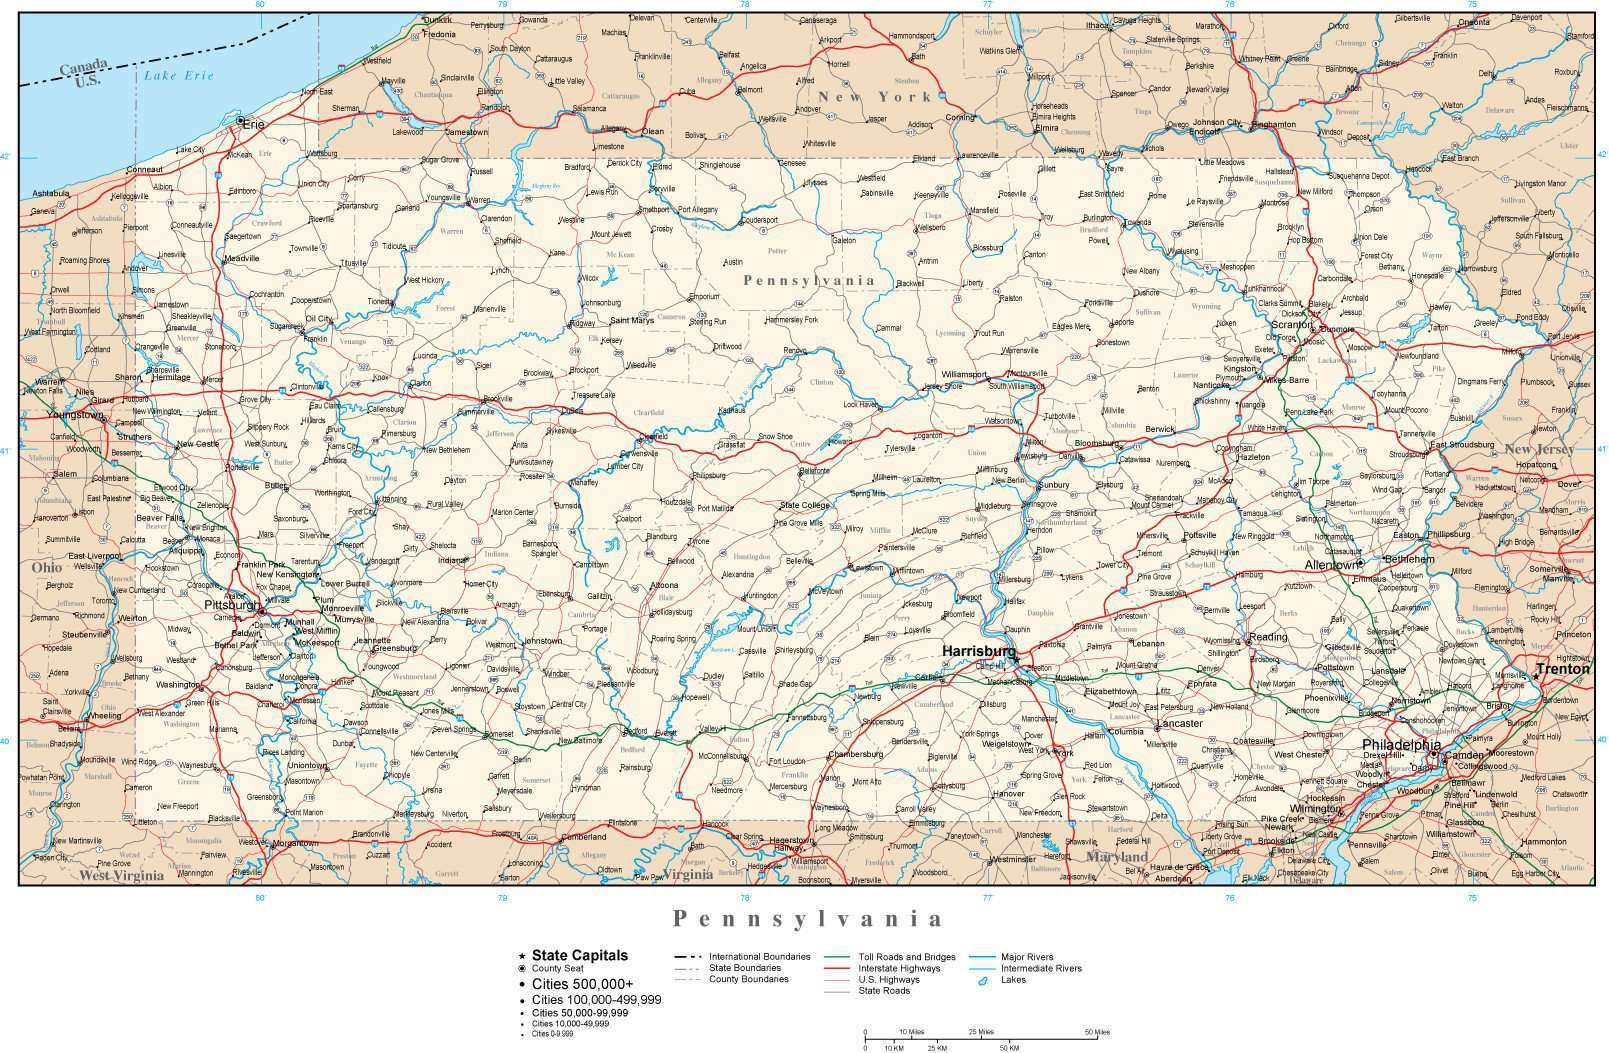 Picture of: Pennsylvania Map In Adobe Illustrator Vector Format